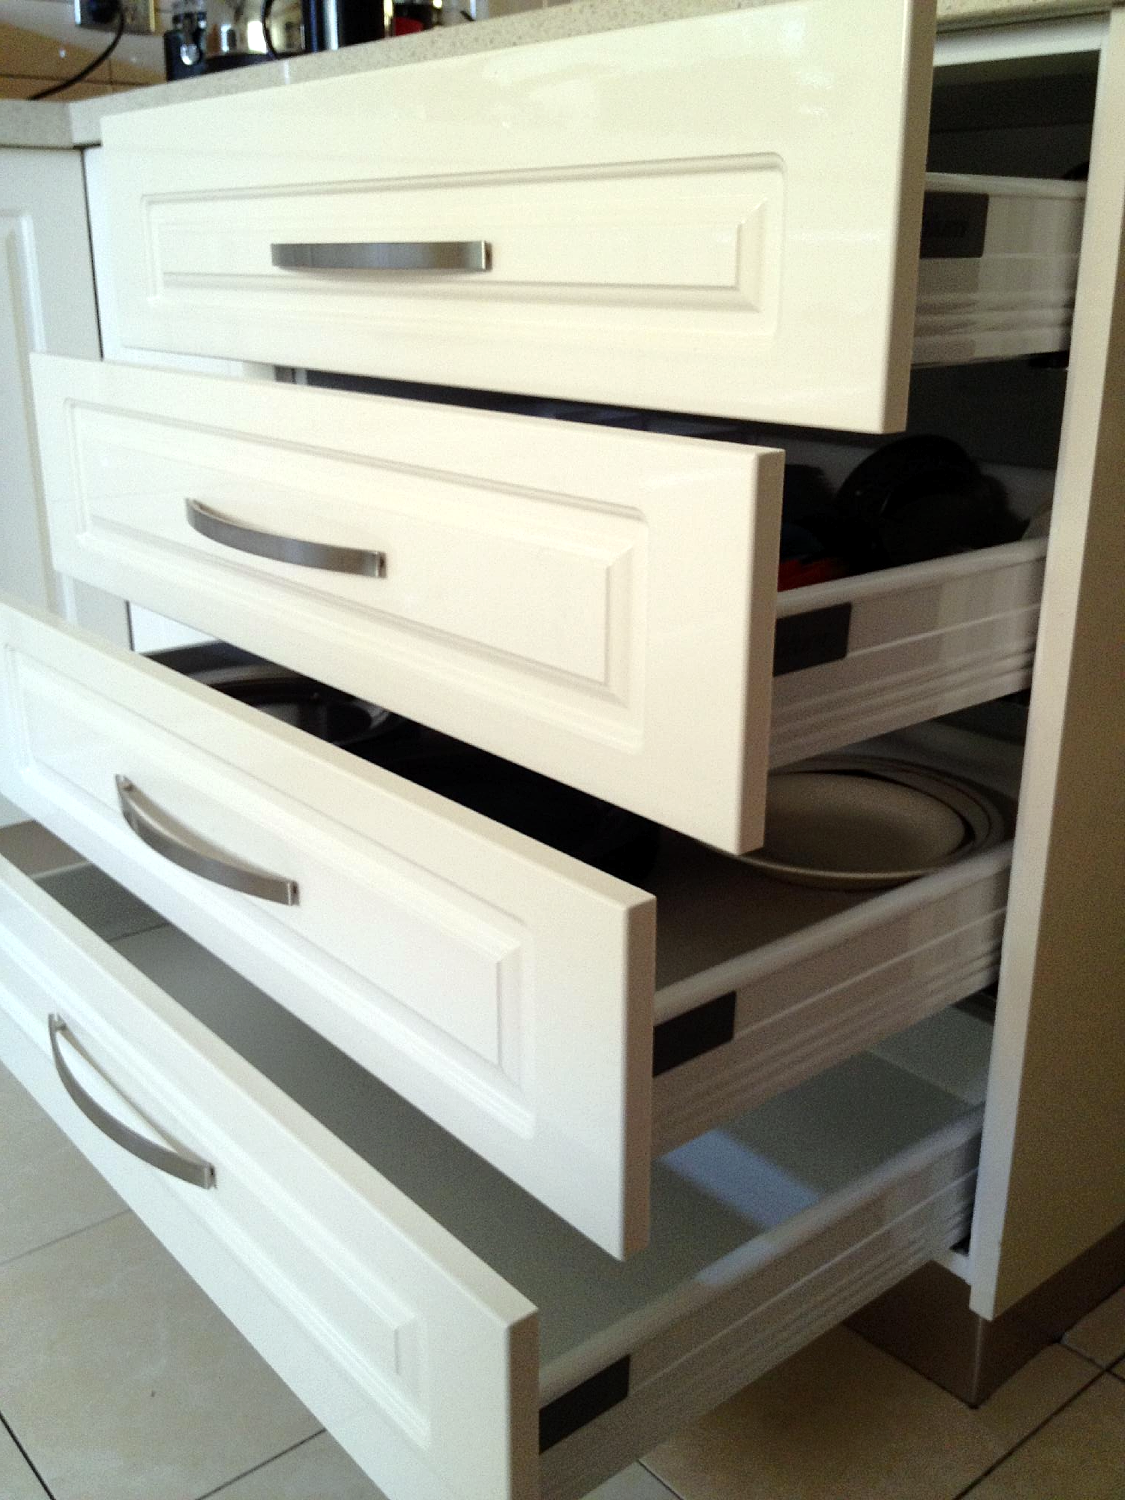 Wynn Joinery Joinery And Cabinetry Melbourne Blum Soft